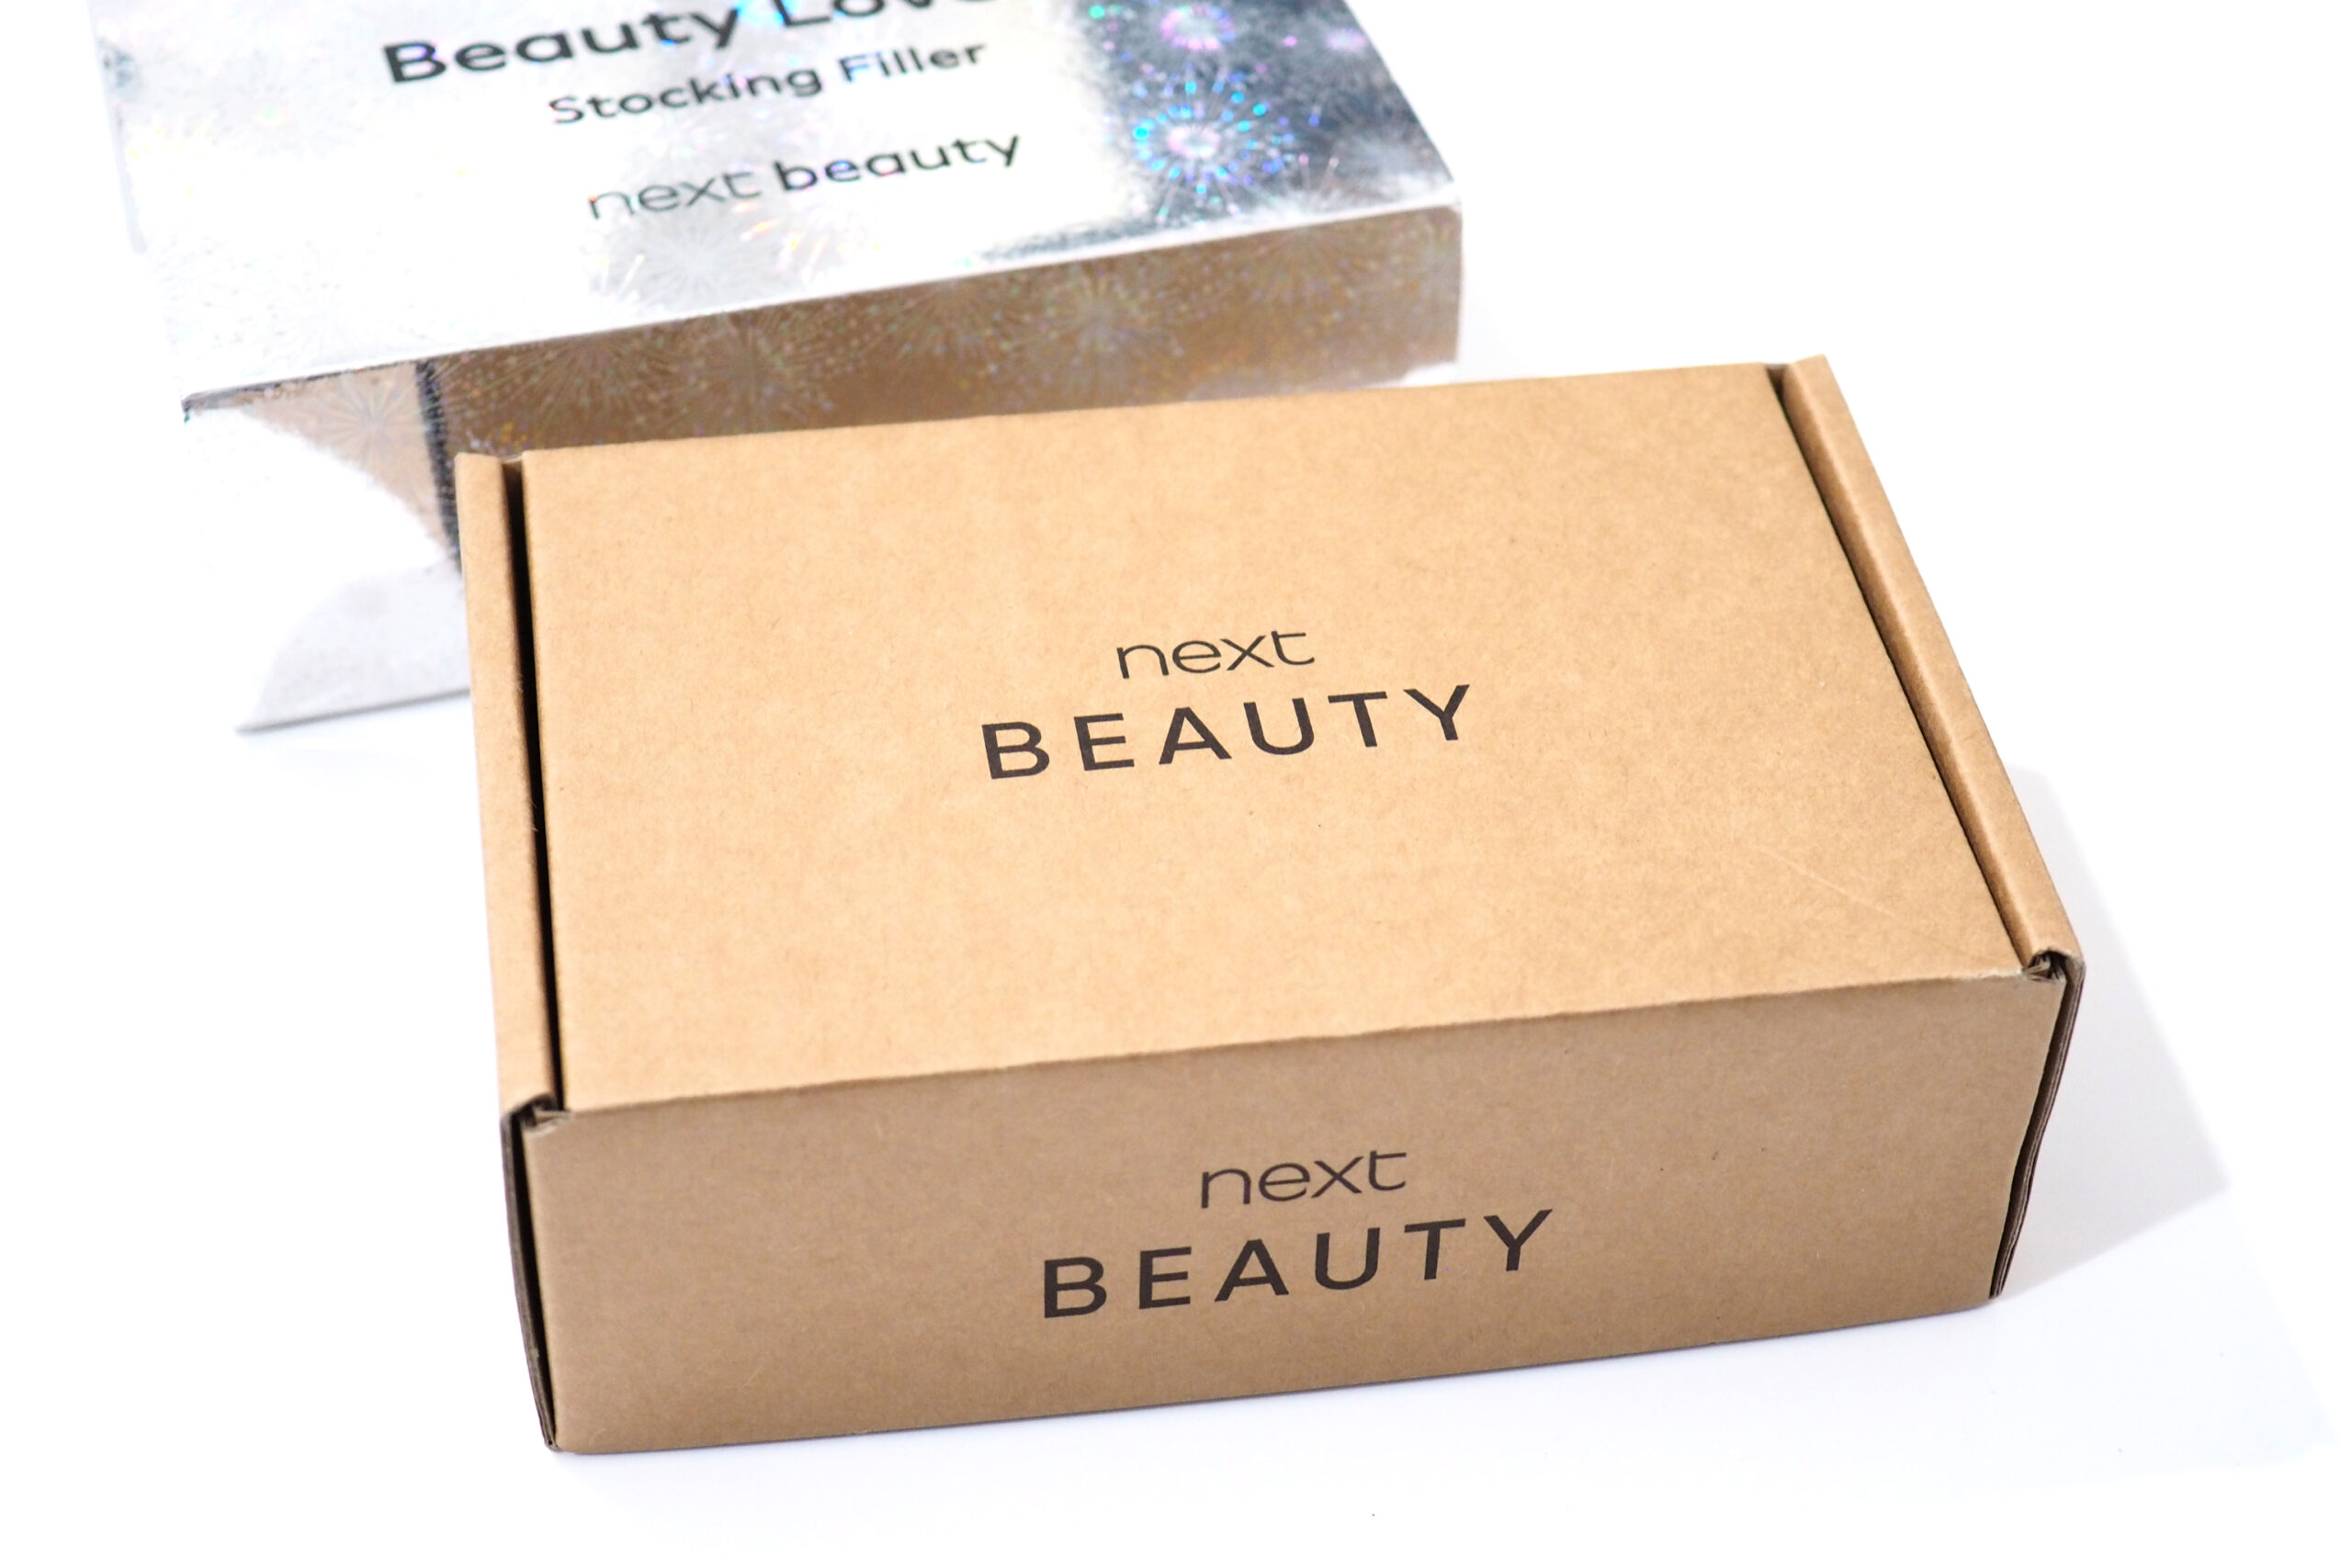 Next The Beauty Lovers Stocking Filler Box Reveal!